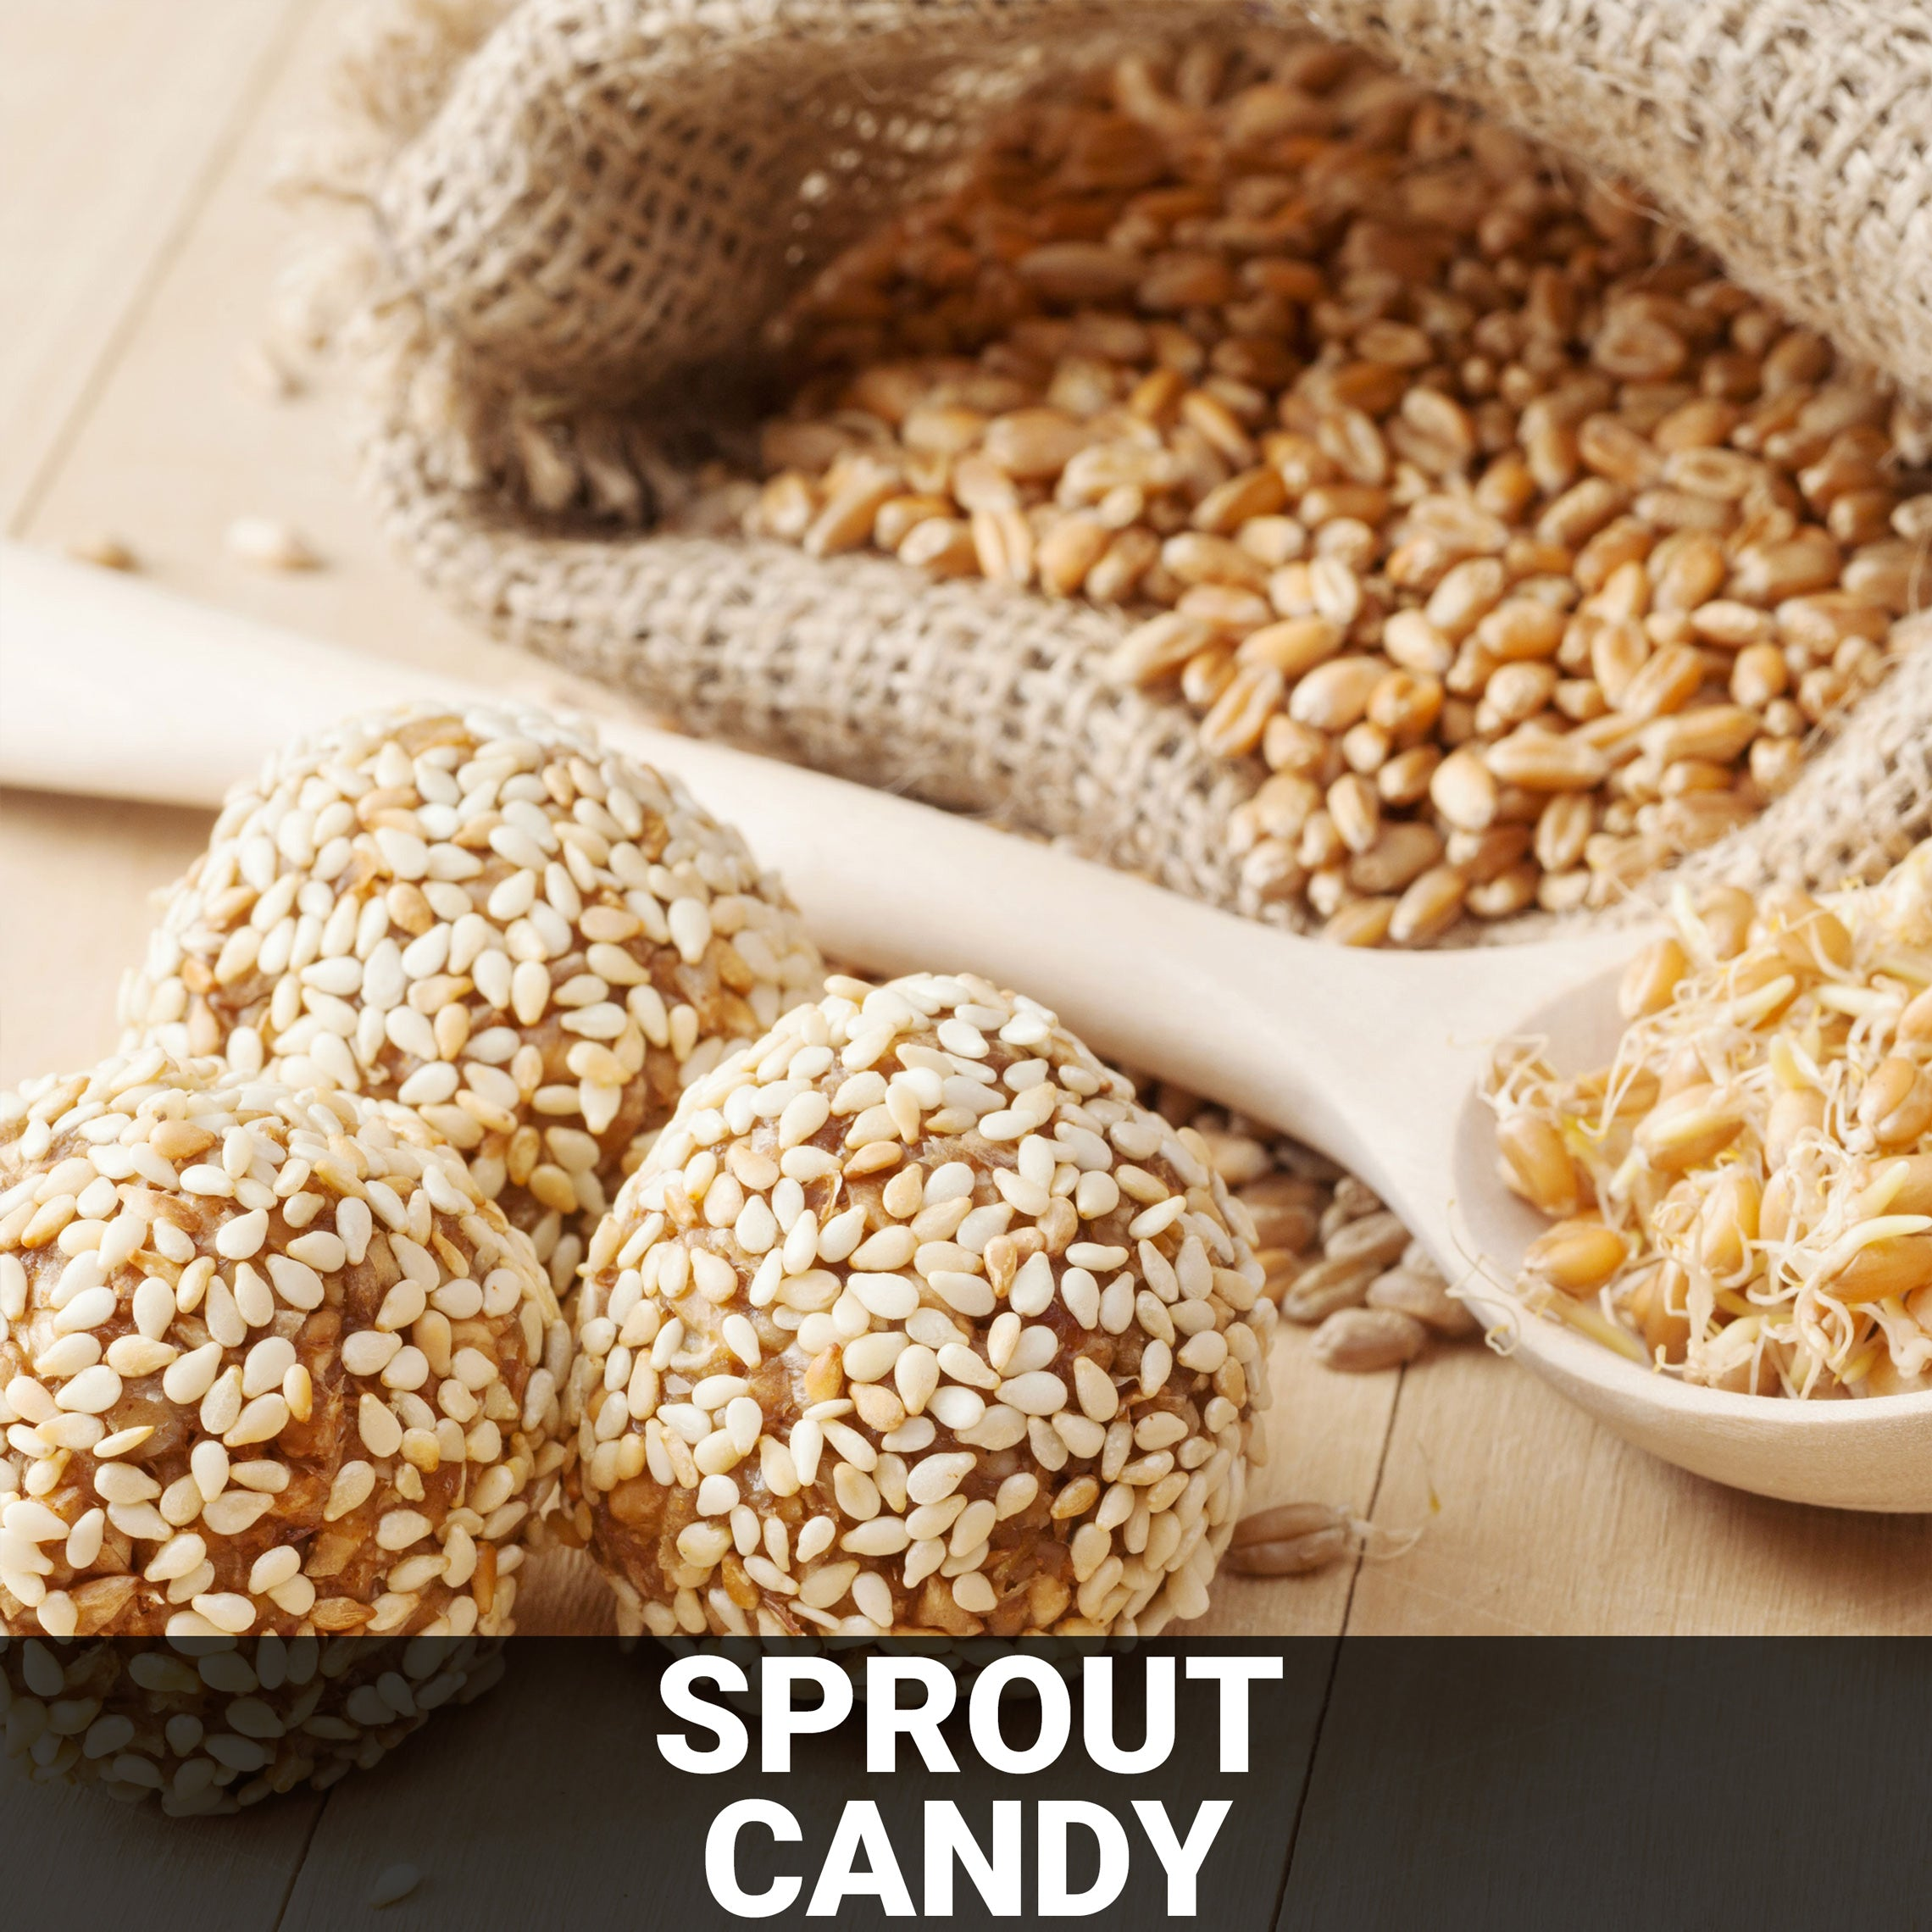 Sprout Candy Recipe - Foods Alive